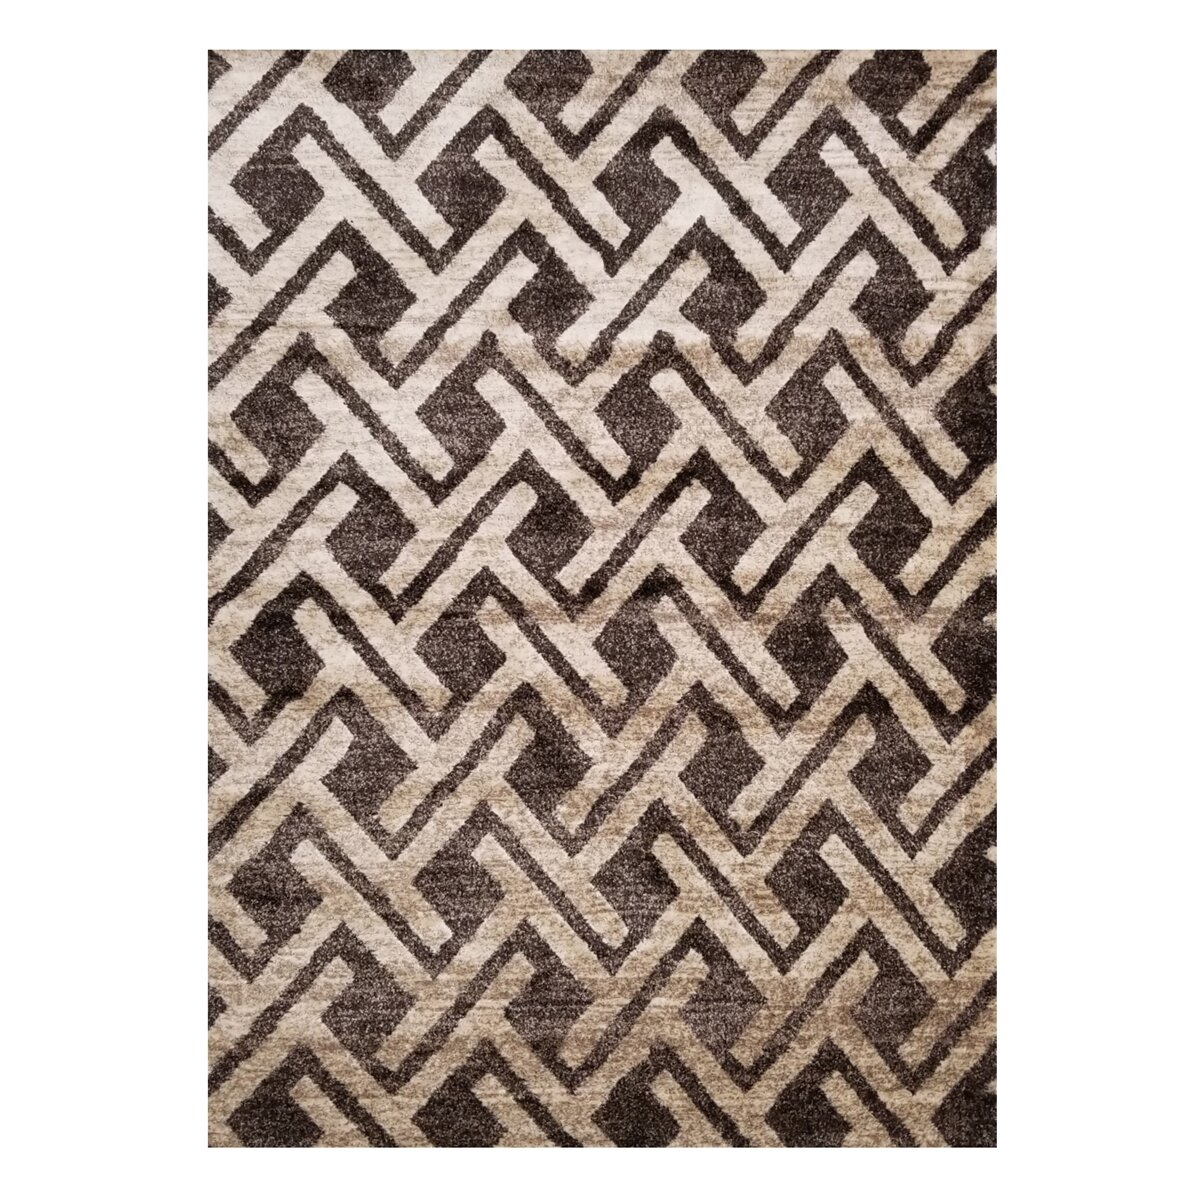 Orren Ellis Eggert Smooth Interlocking Chevron Brown Area Rug Wayfair